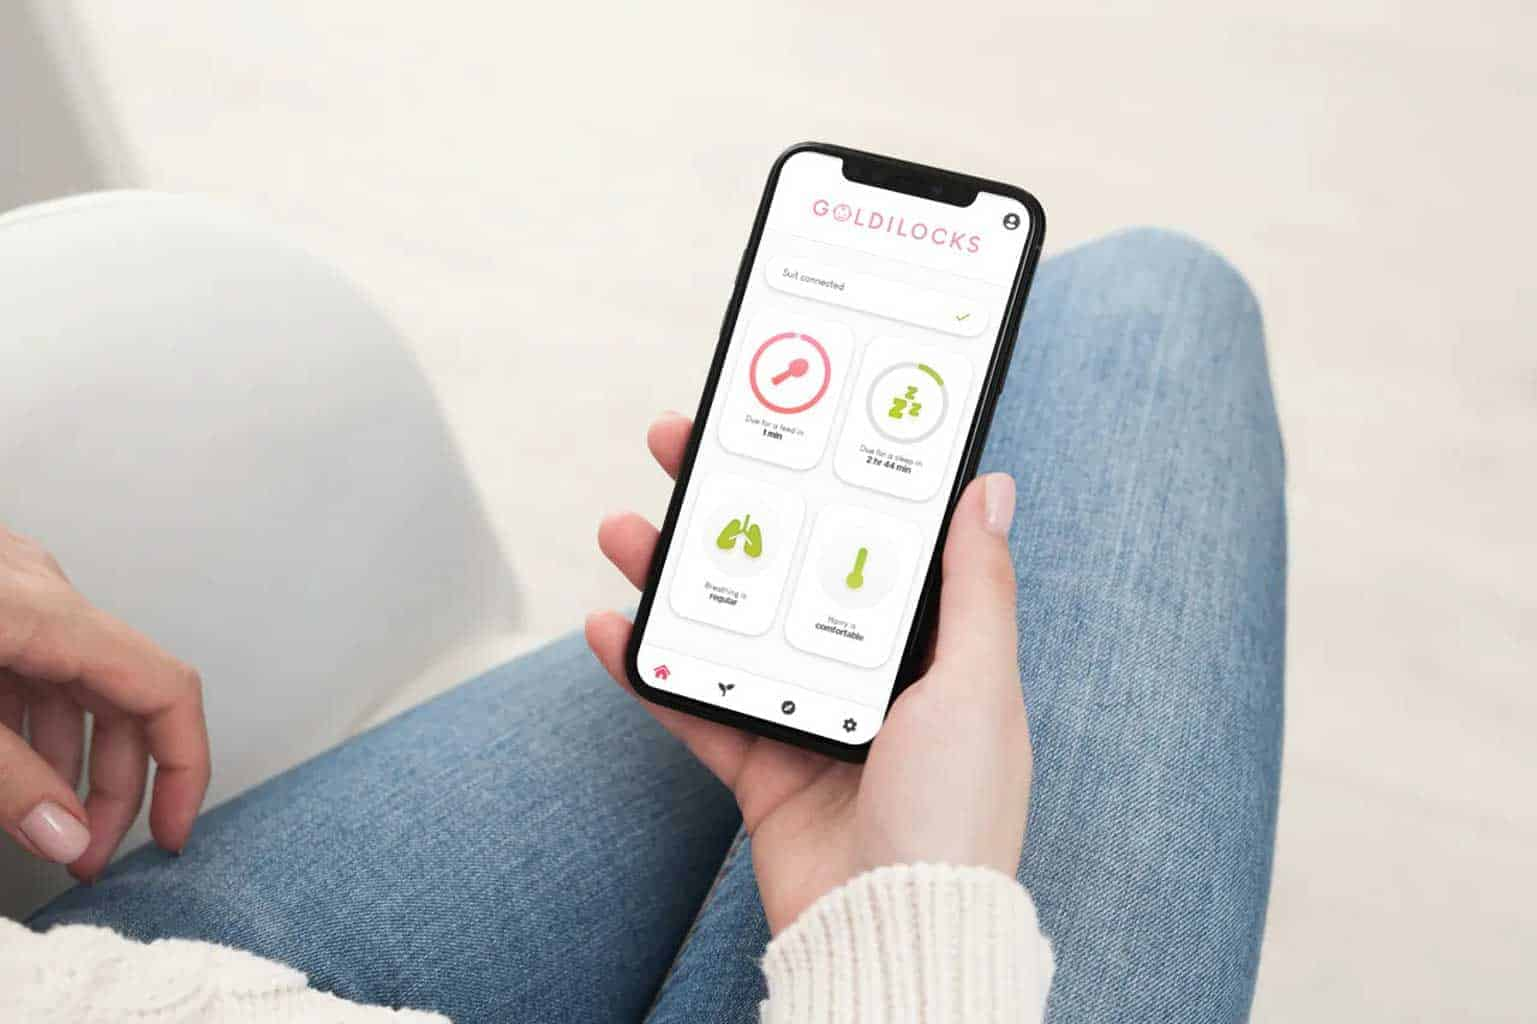 Why was the Goldilocks Suit Baby Monitor Made? A young mother using the Goldilocks Suit App for iOS and Android mobile phones to monitor their baby